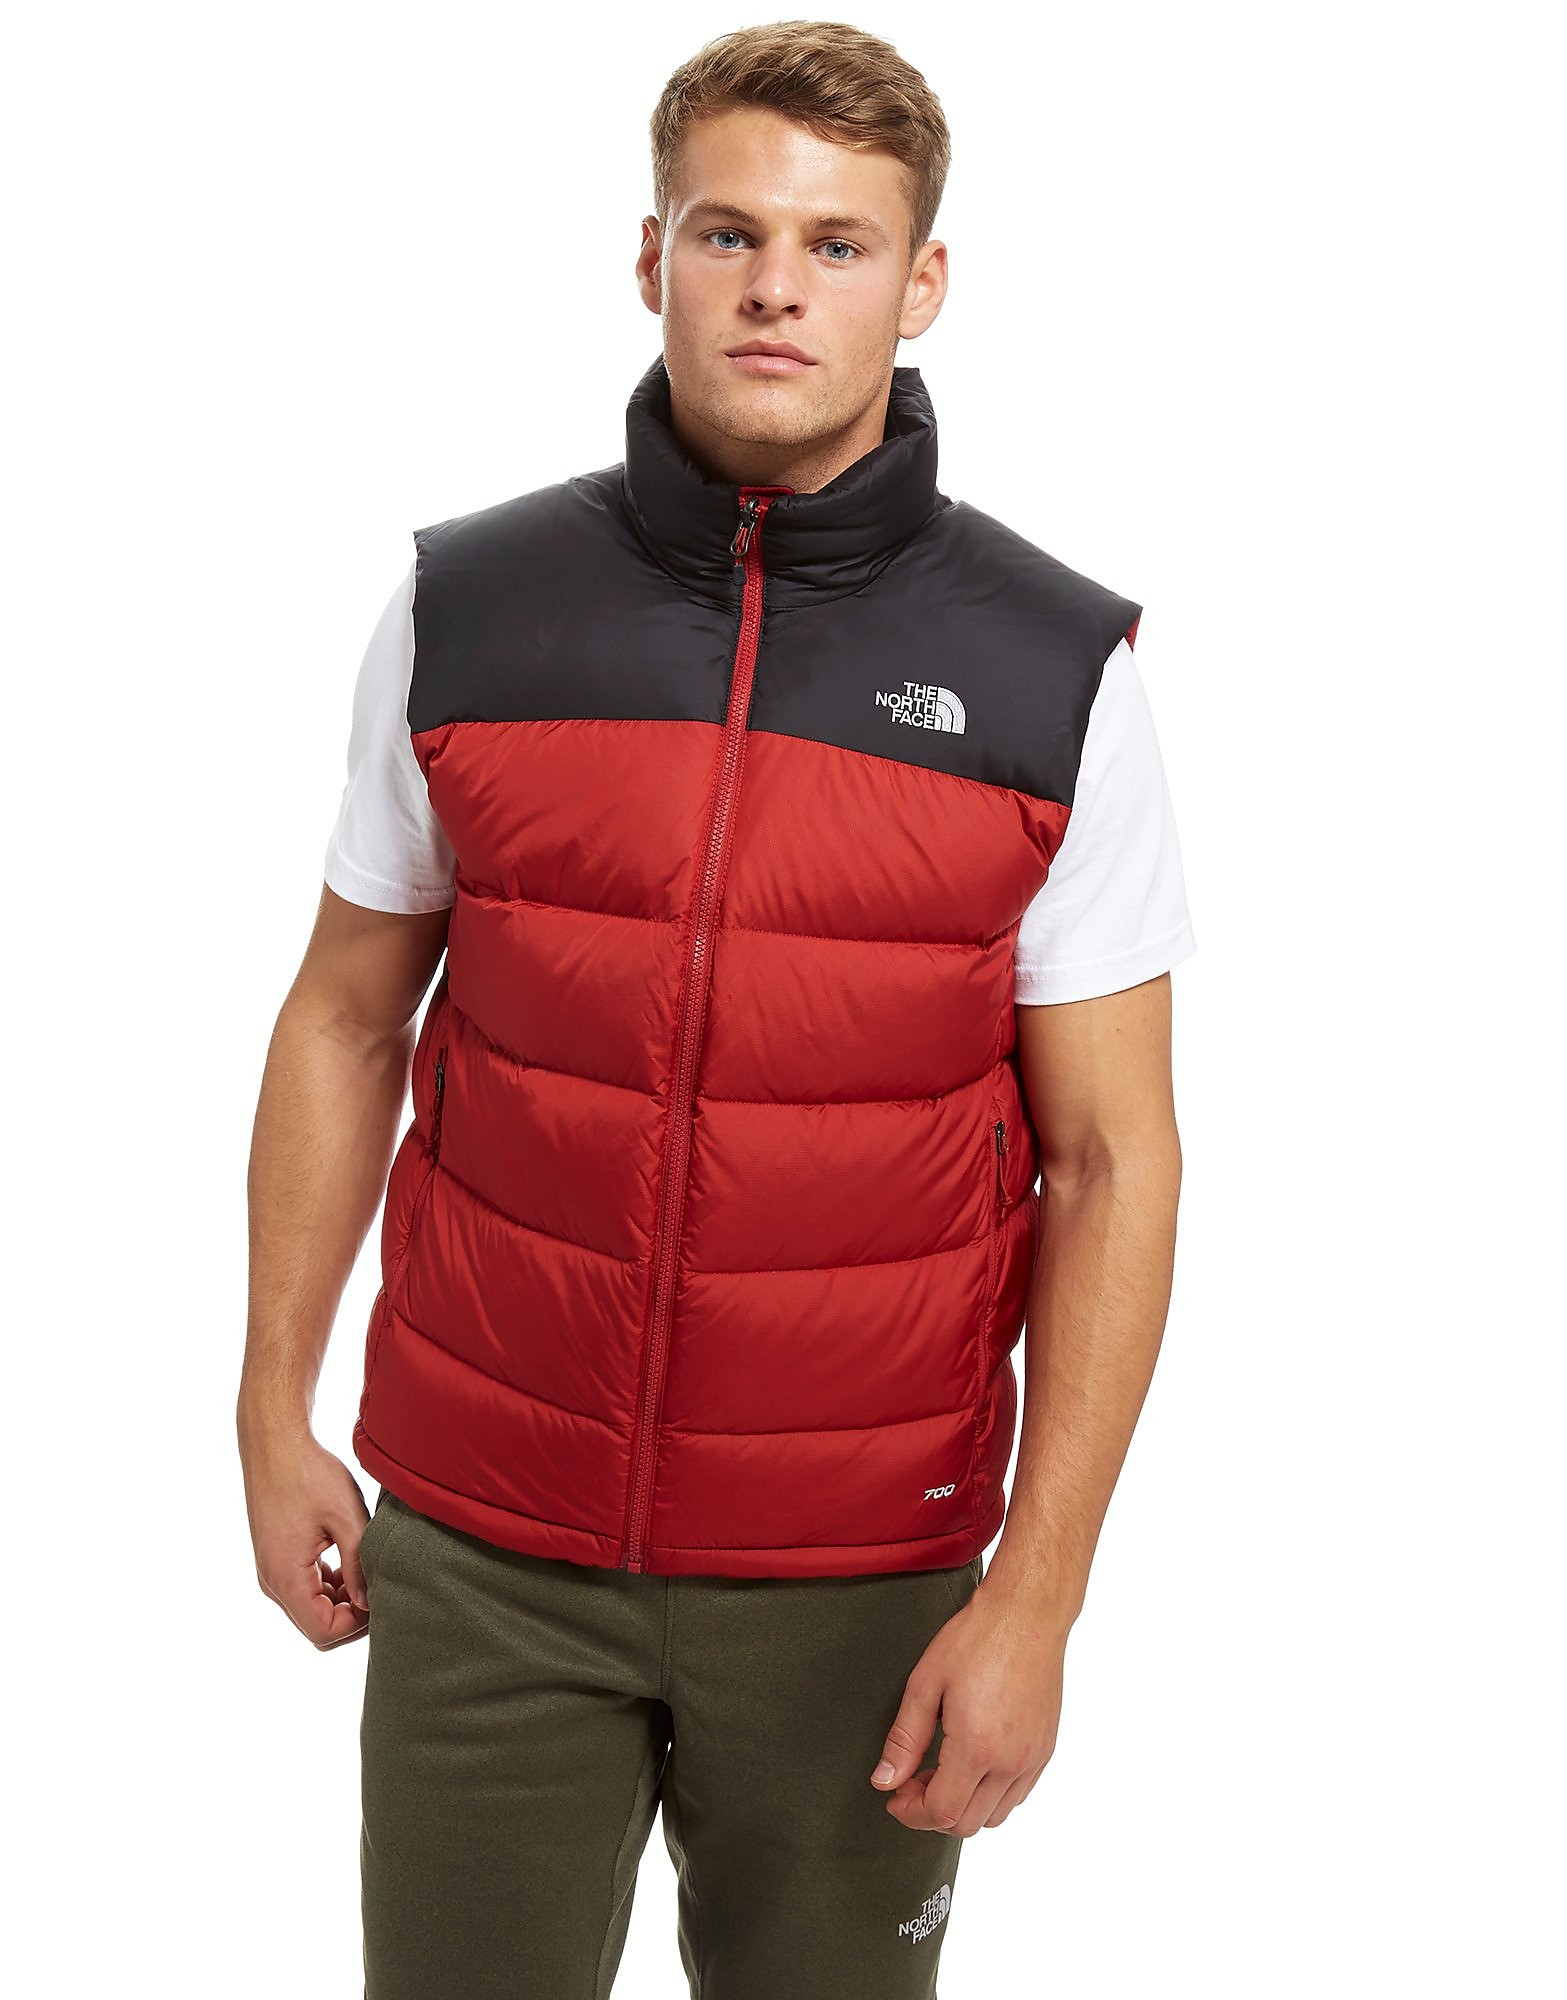 The North Face Nupse 2 Vest